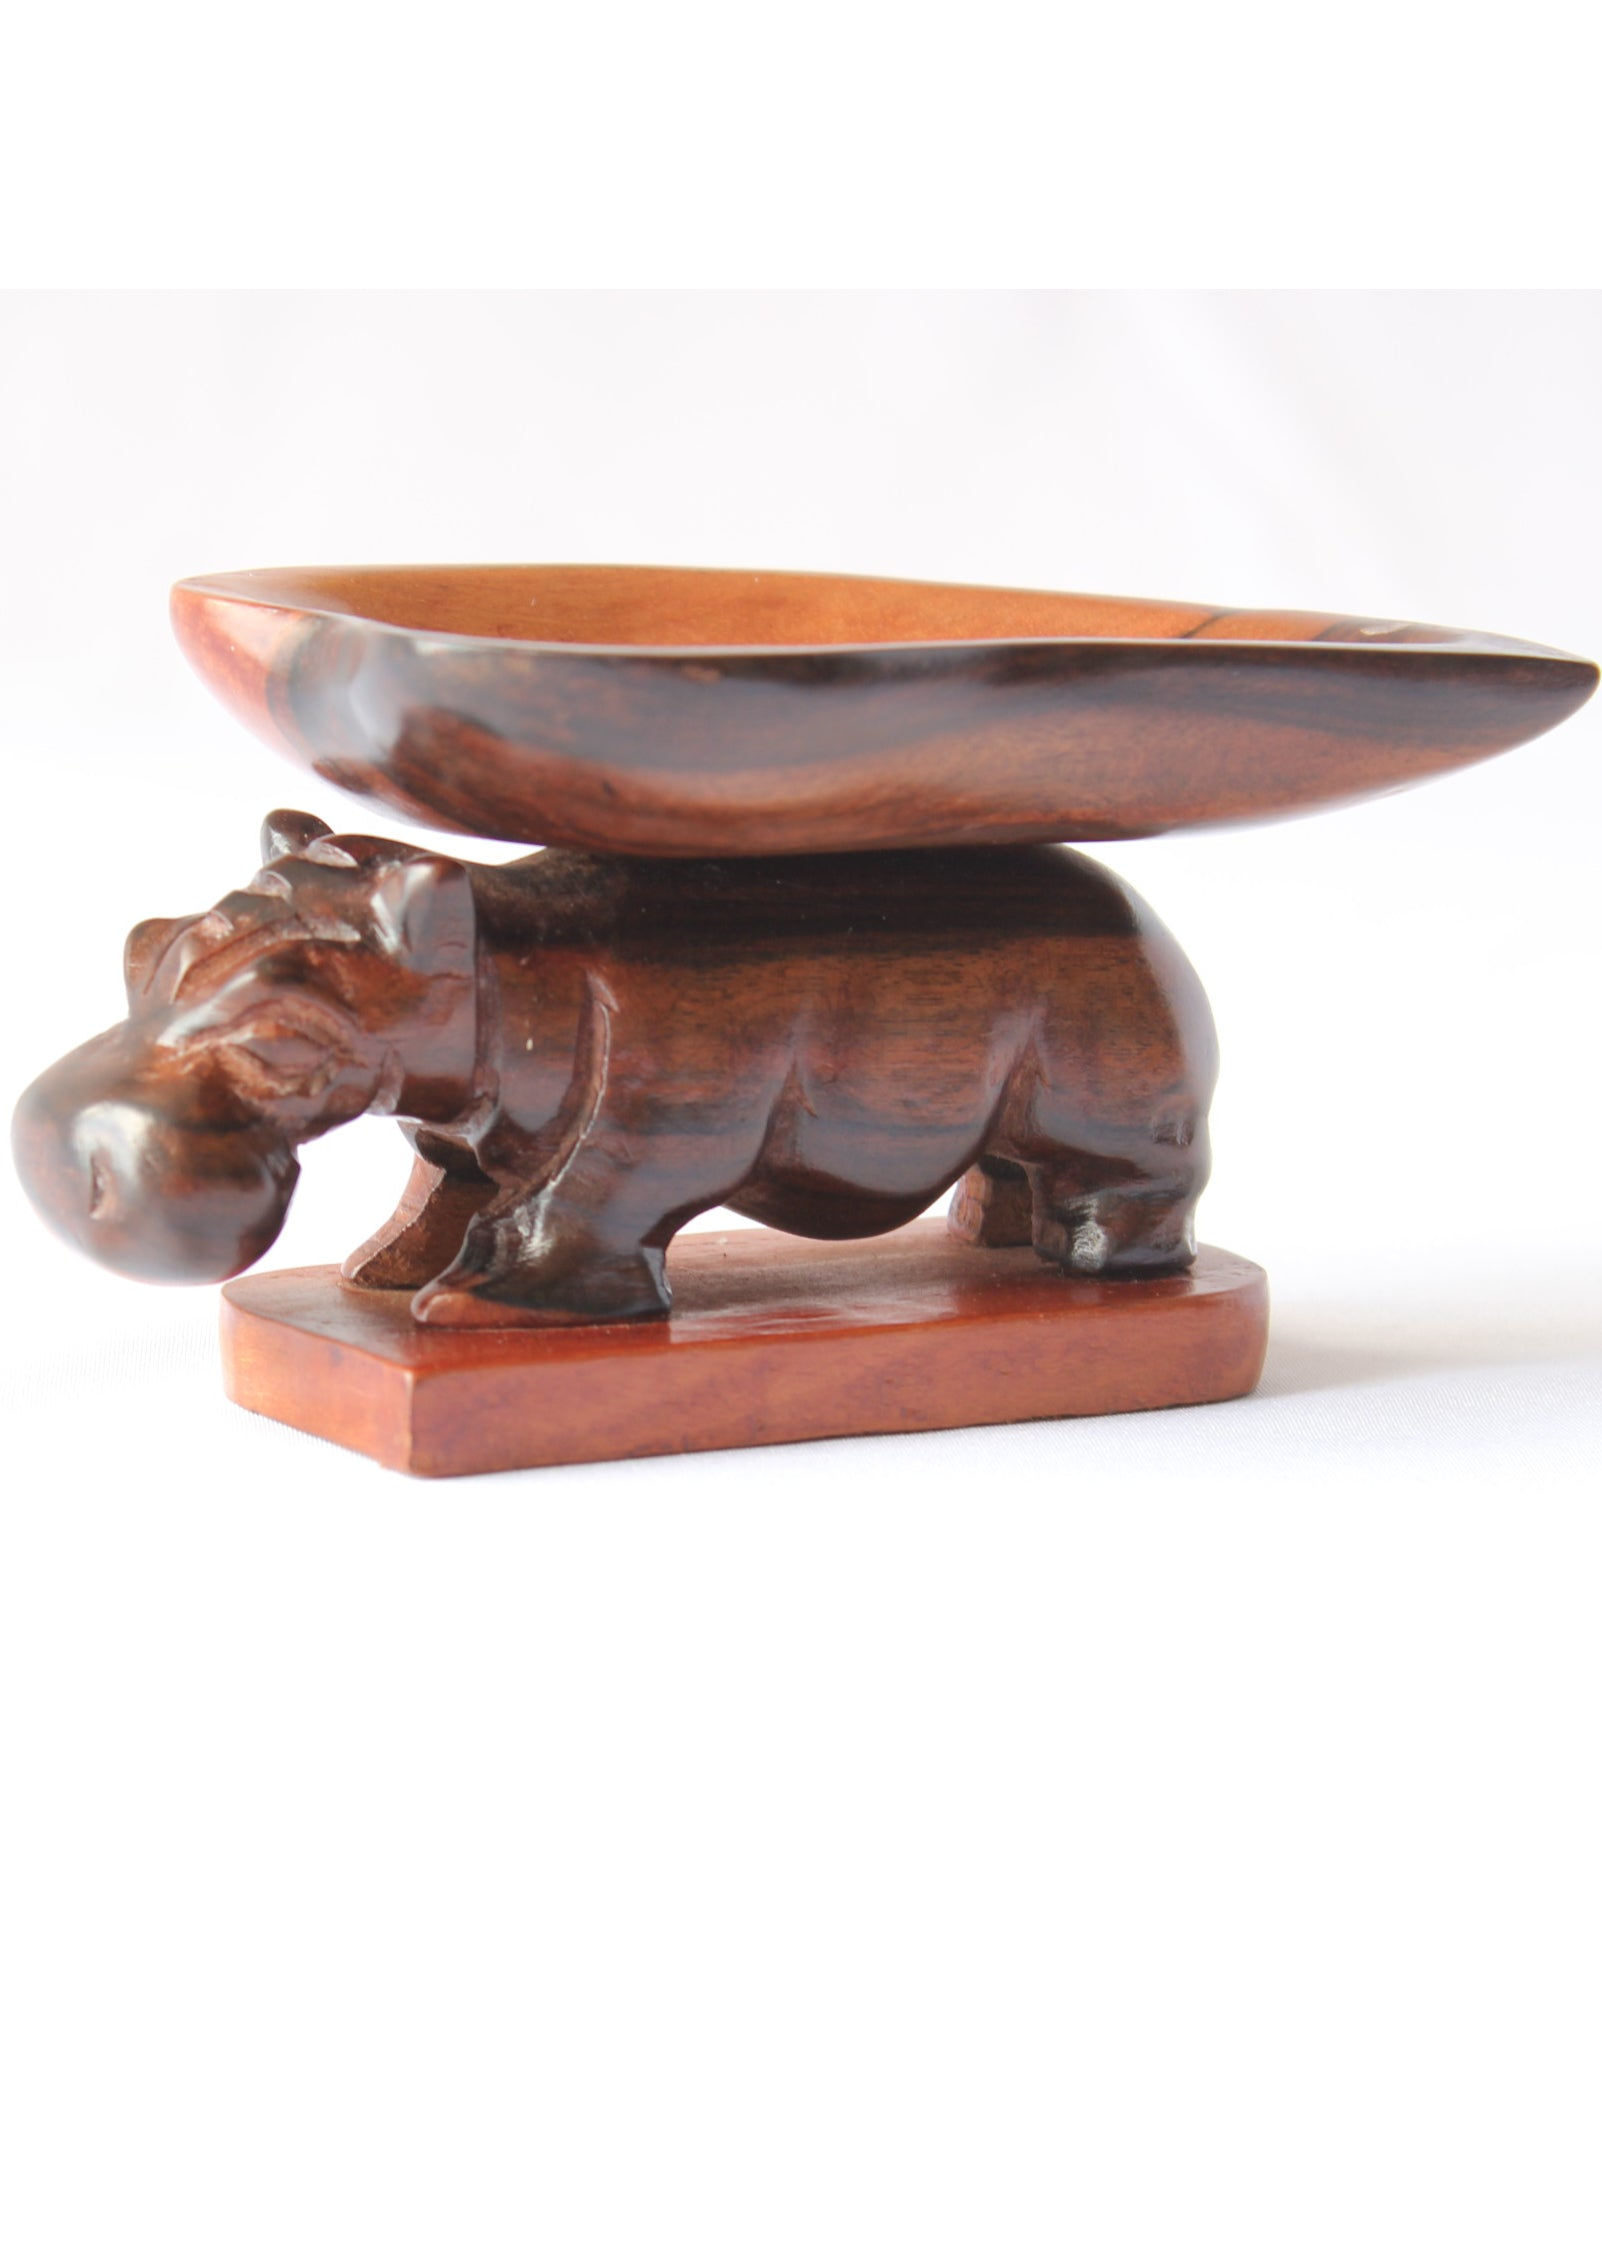 Hippo Carving